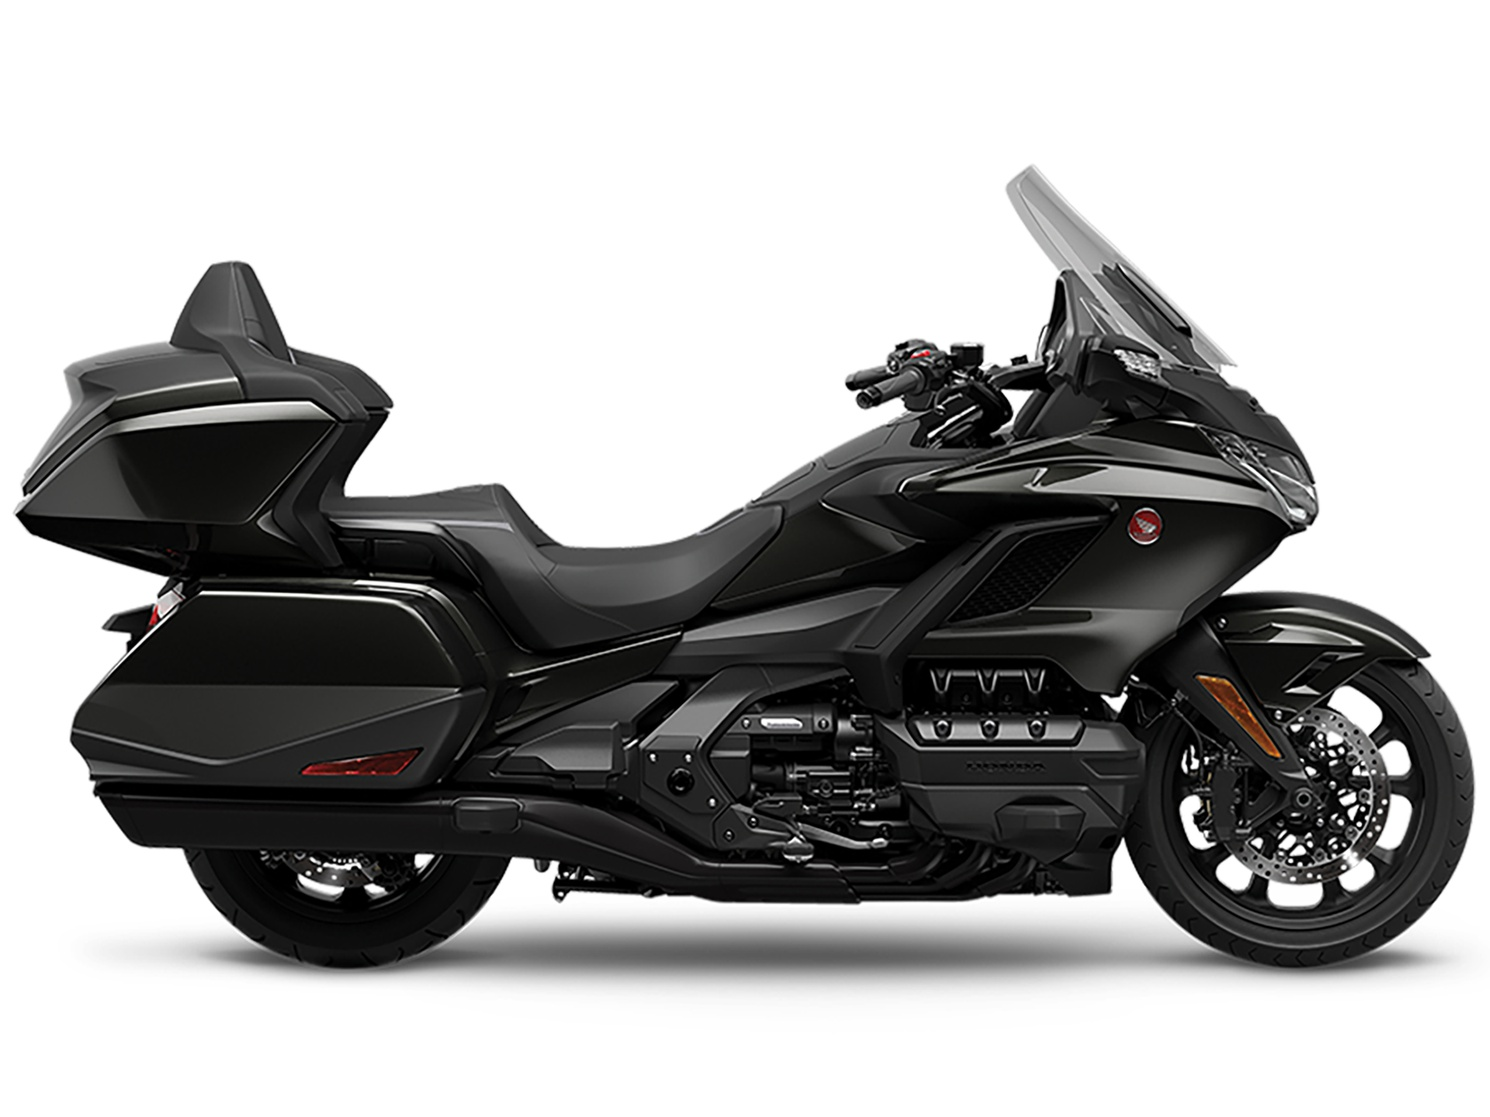 2021 Honda Gold Wing Tour DCT ABS Frais inclus+Taxes